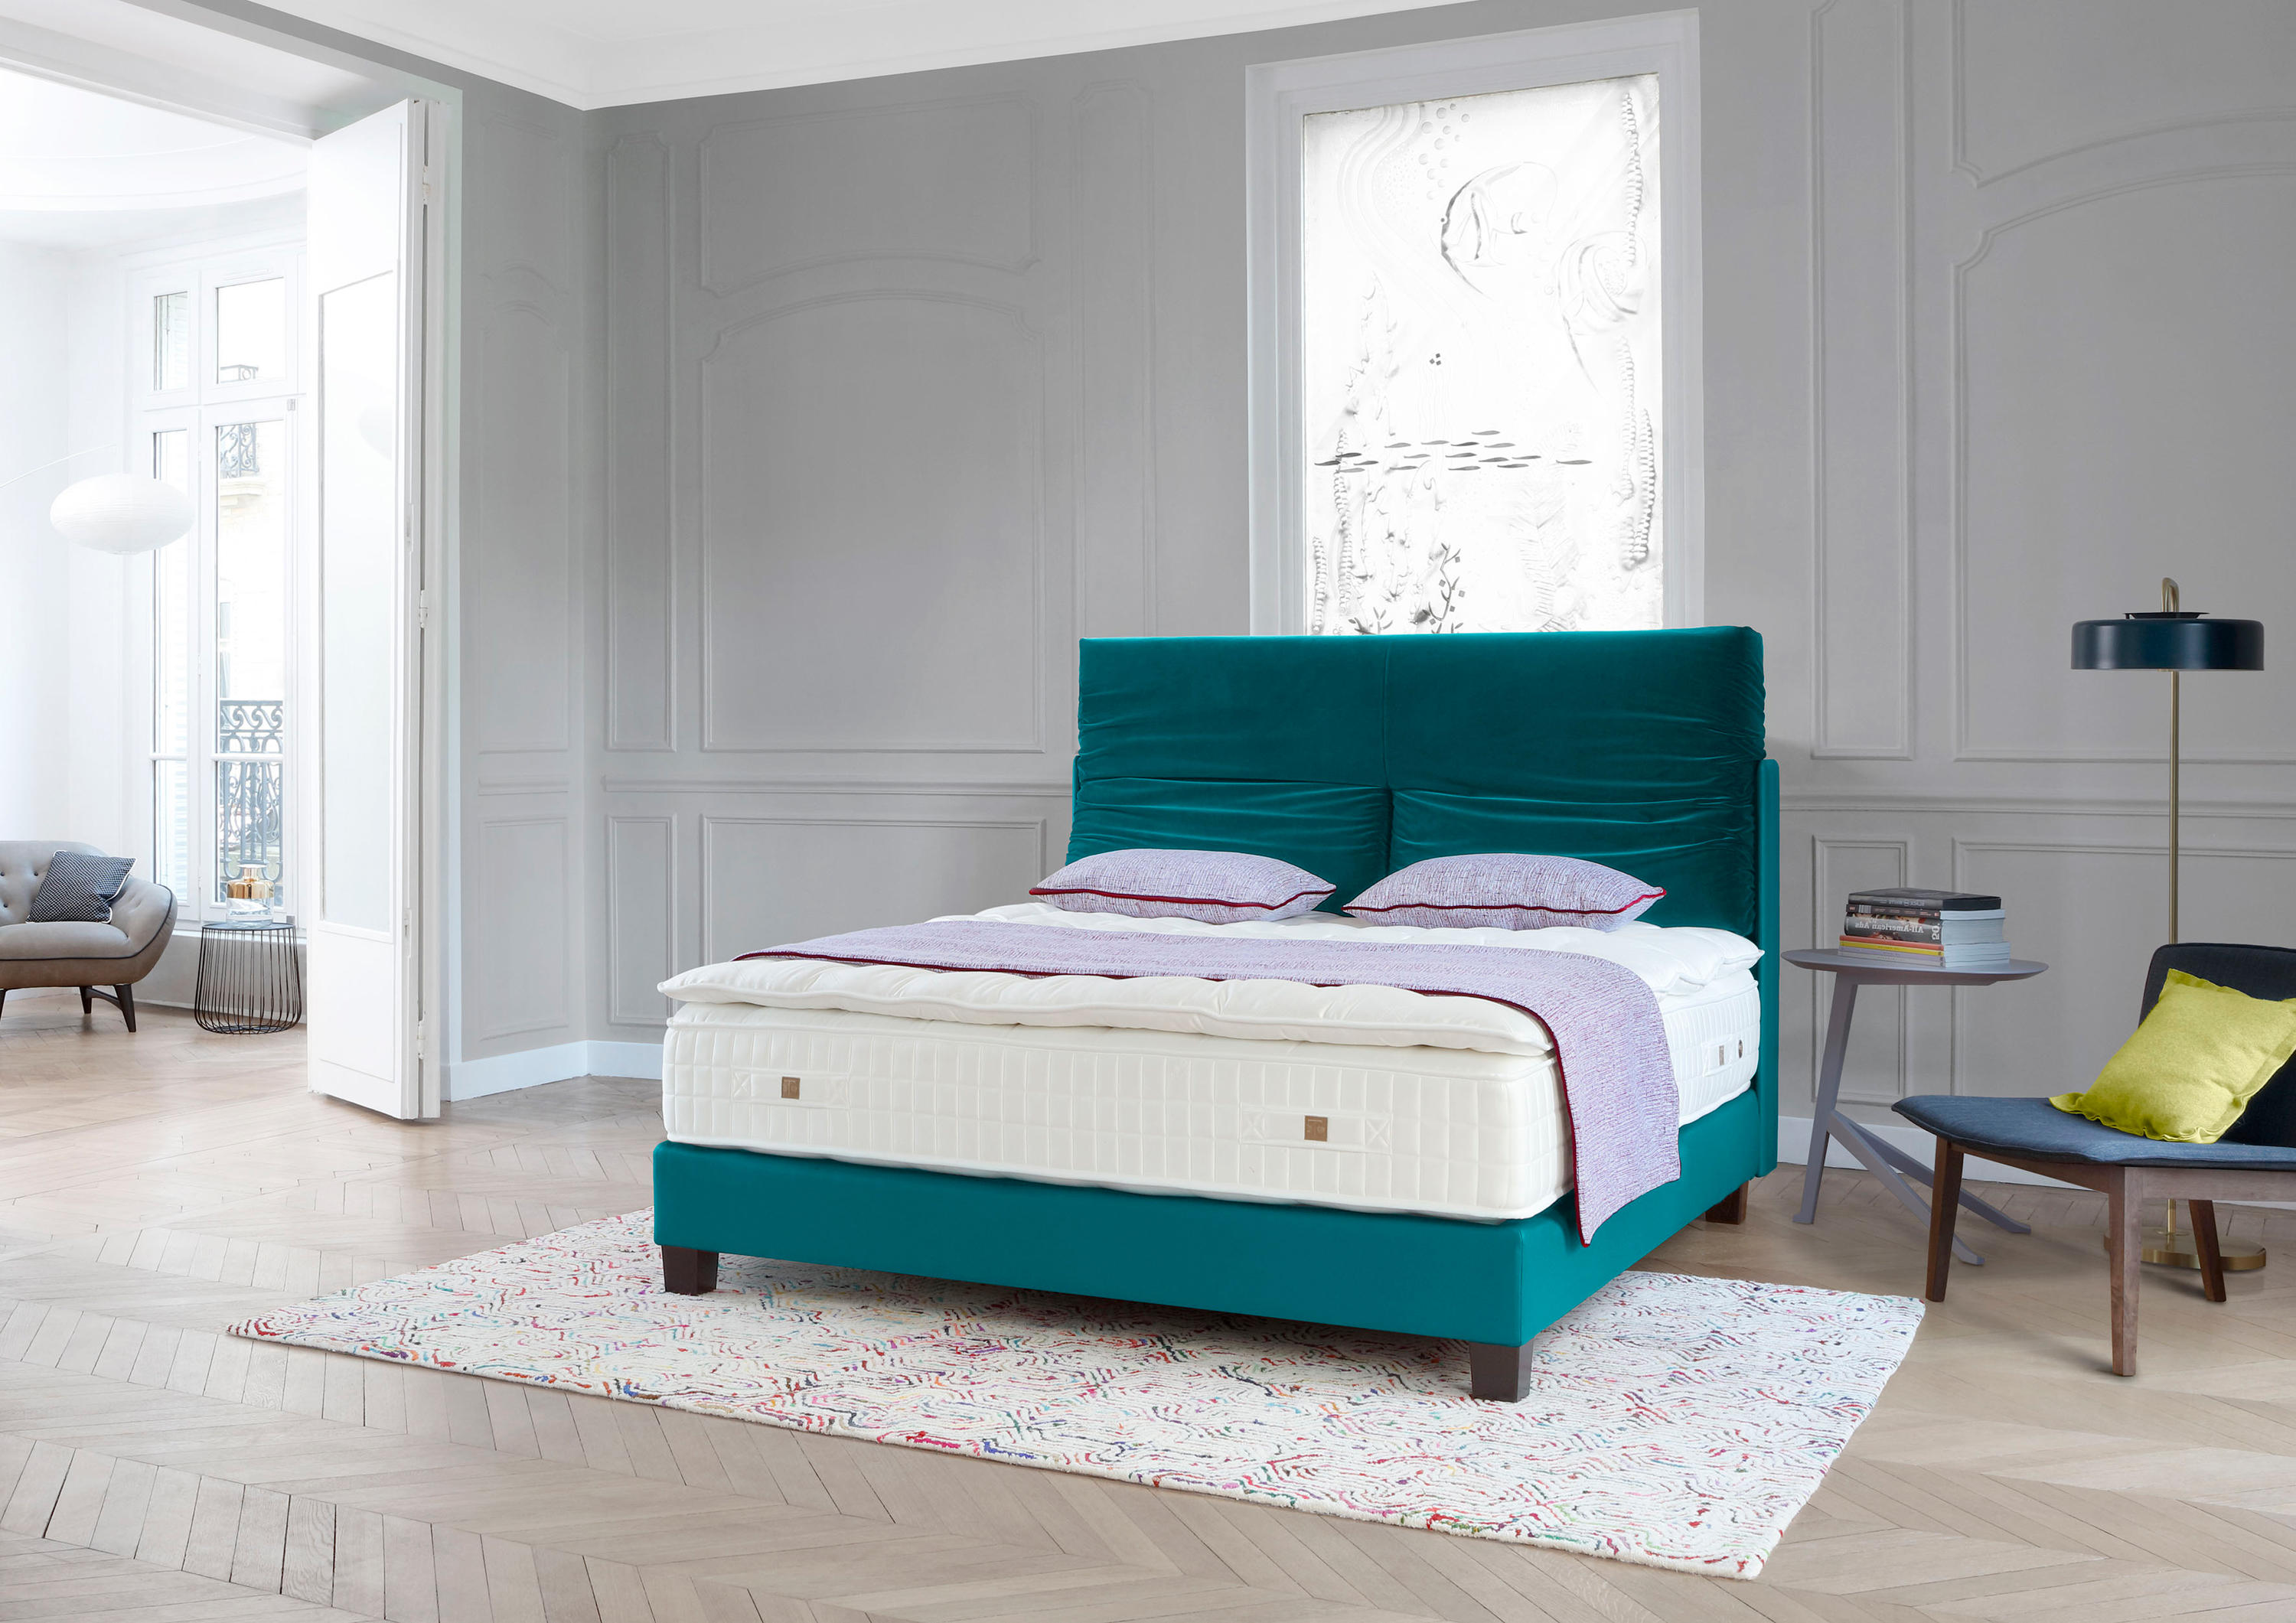 Charmant Sleeping Systems Collection Prestige | Headboard Mellow By Treca Paris | Bed  Headboards